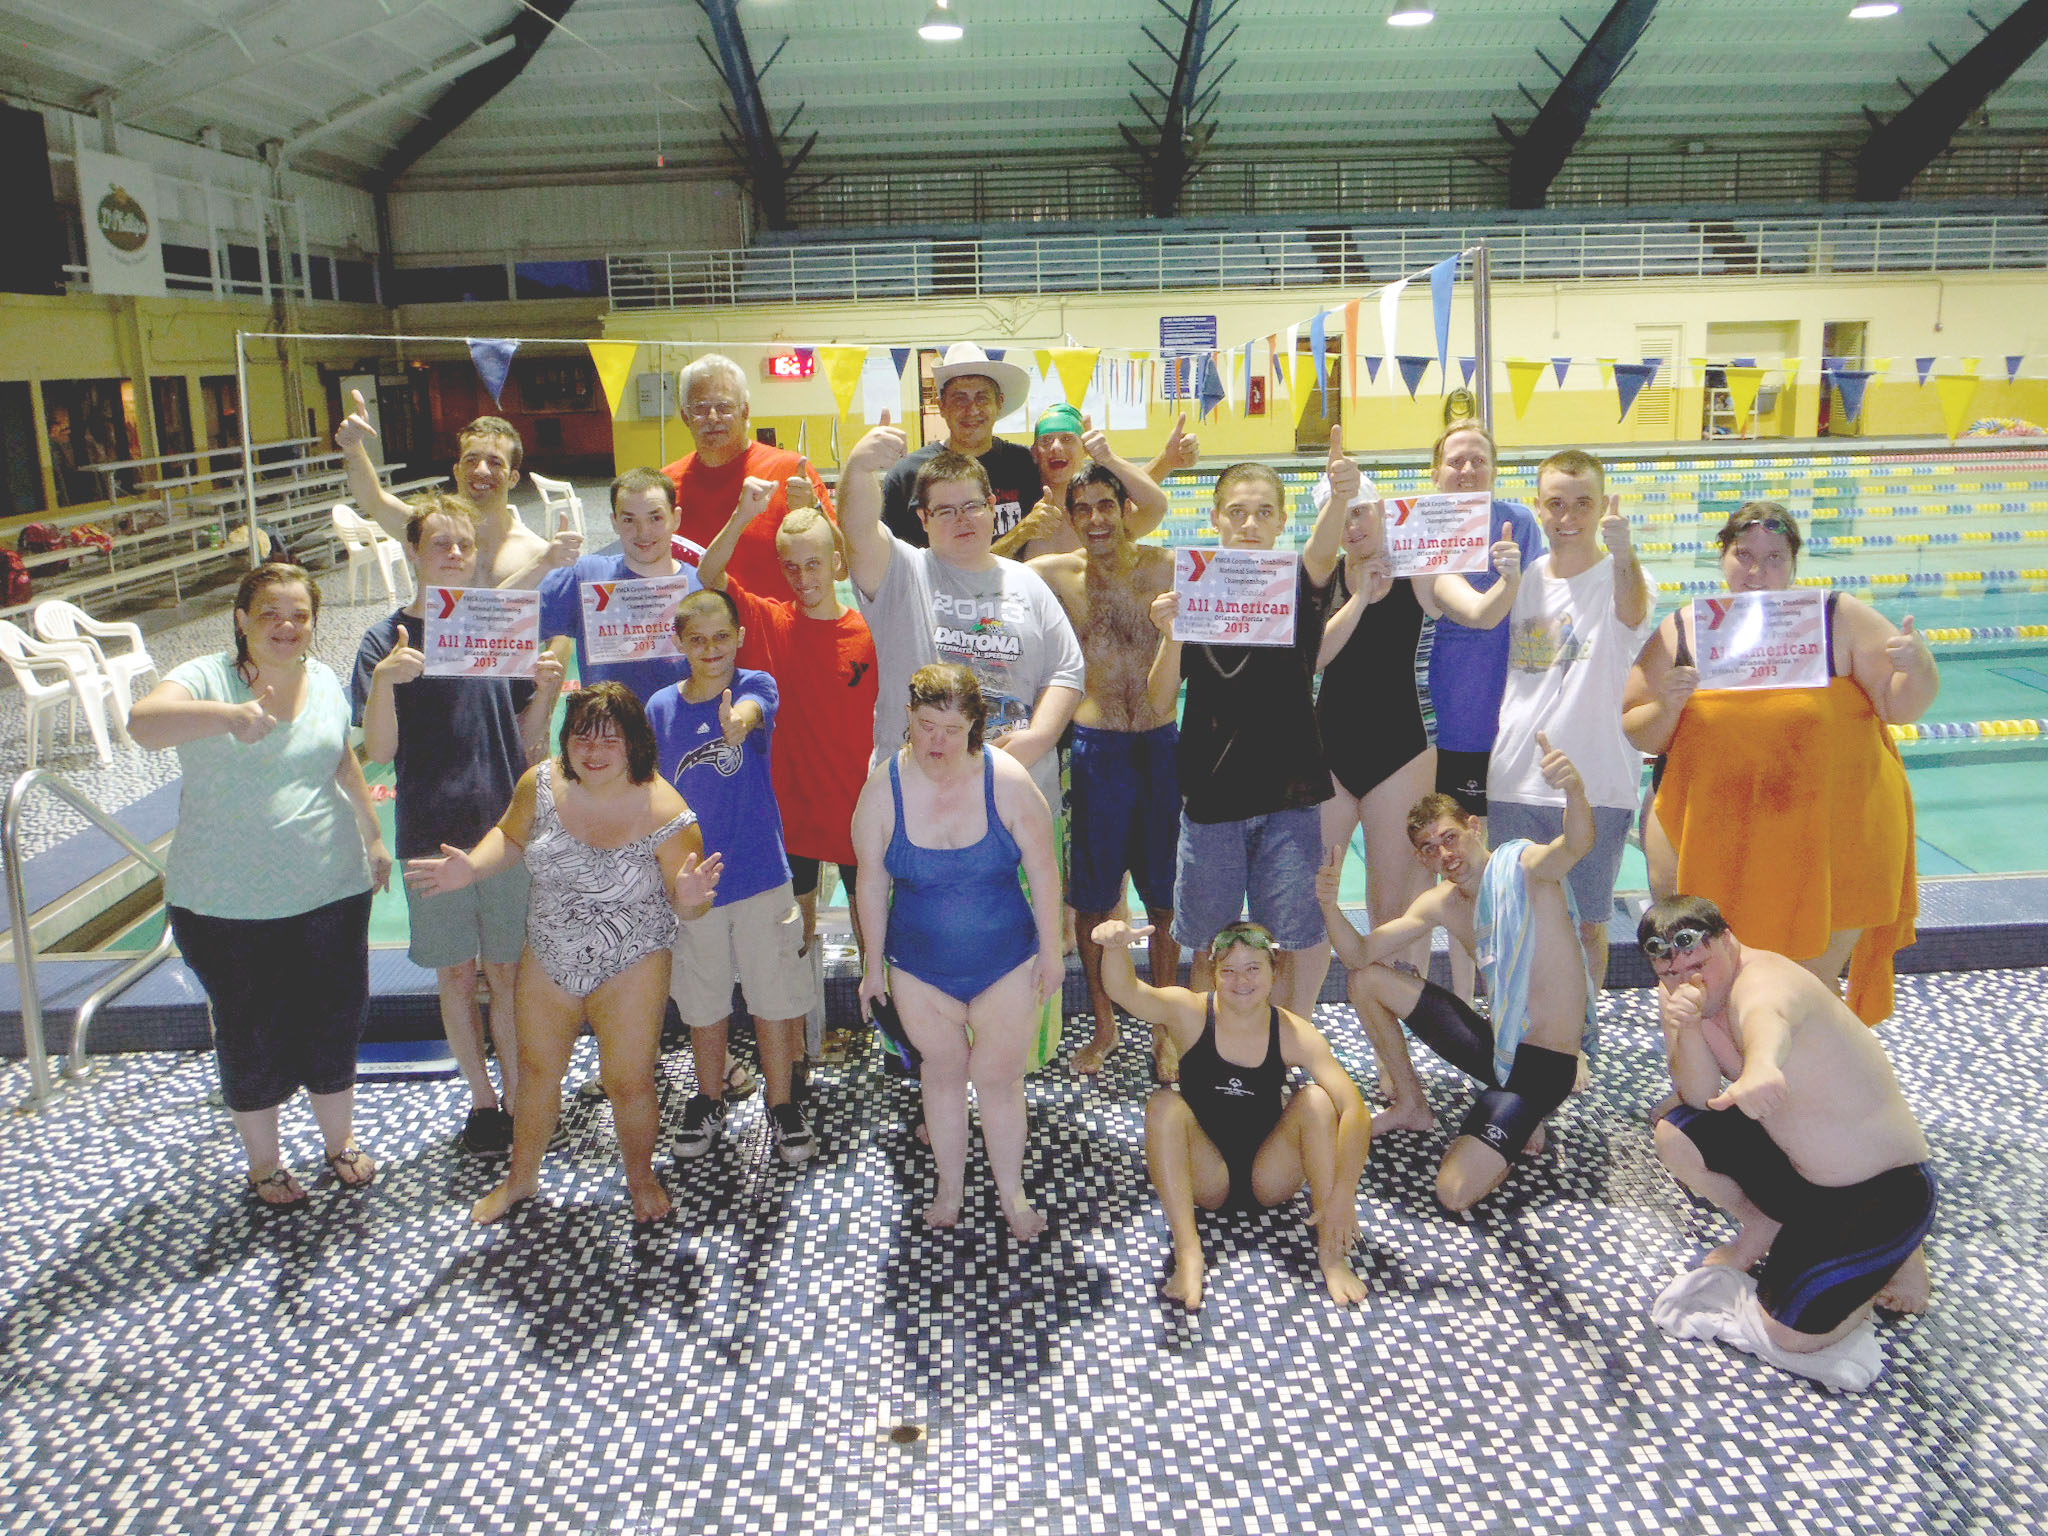 Everyone swam great at county games!